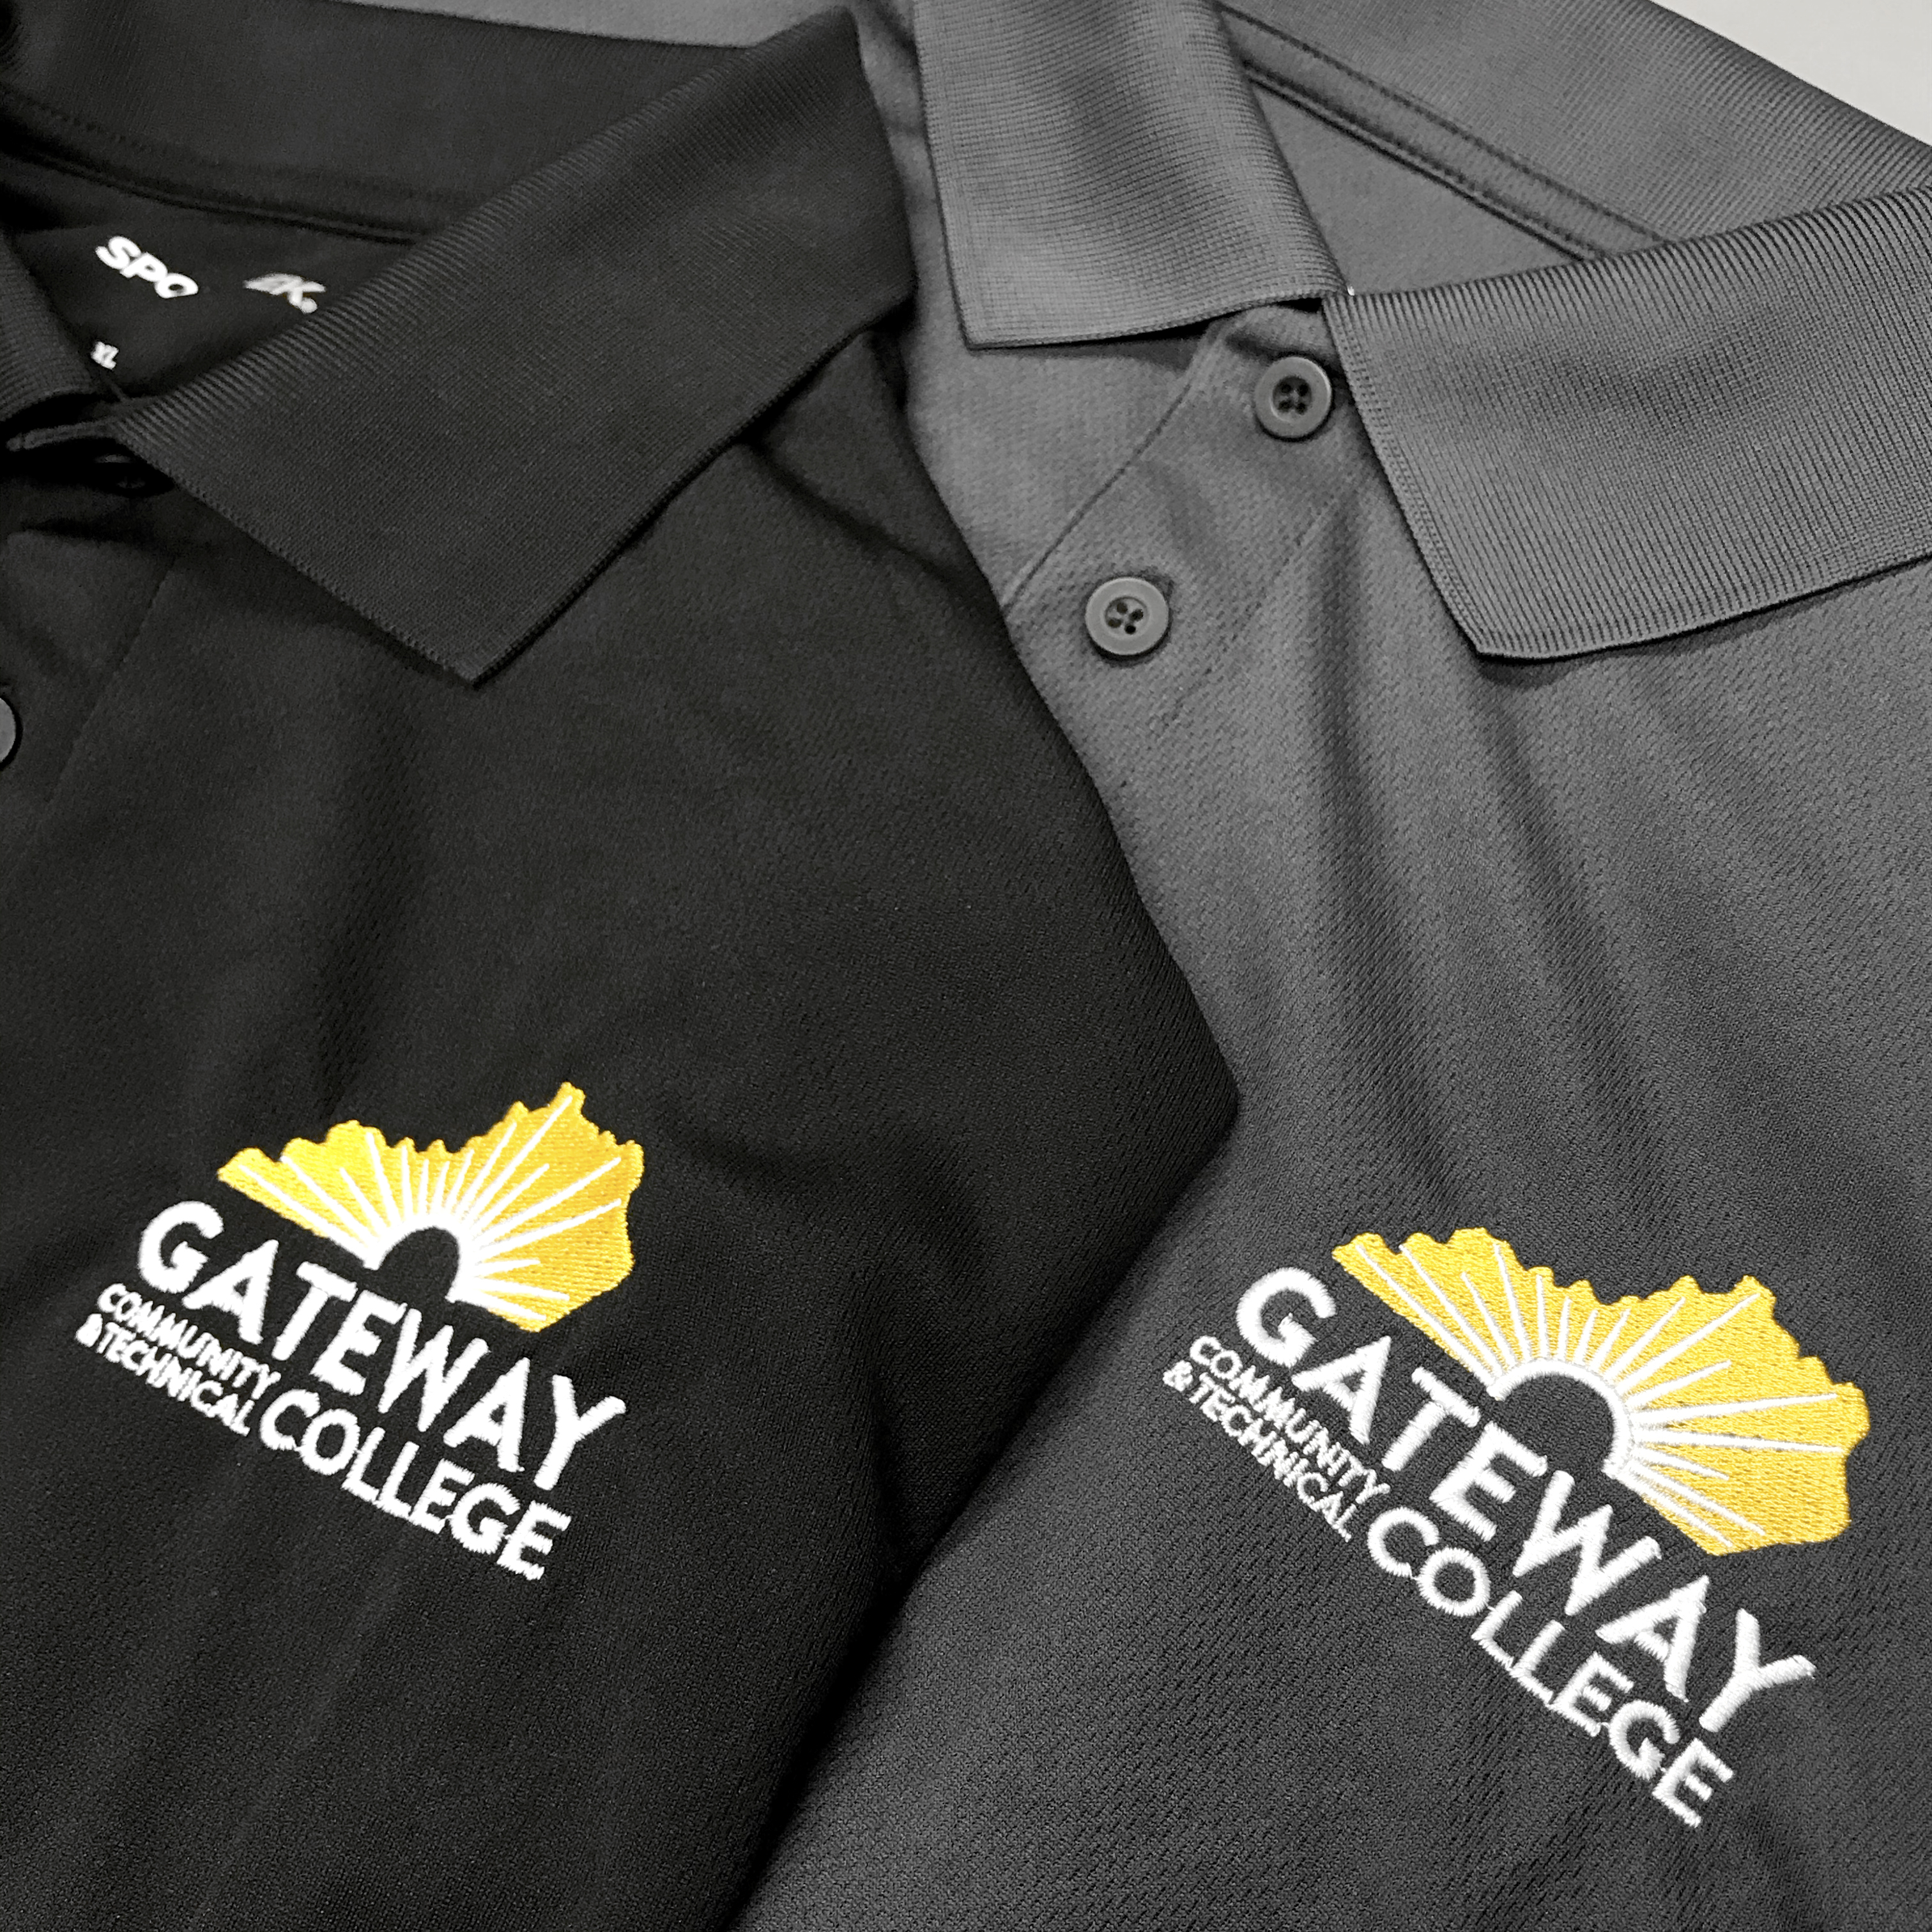 Gateway College gray and black polos.